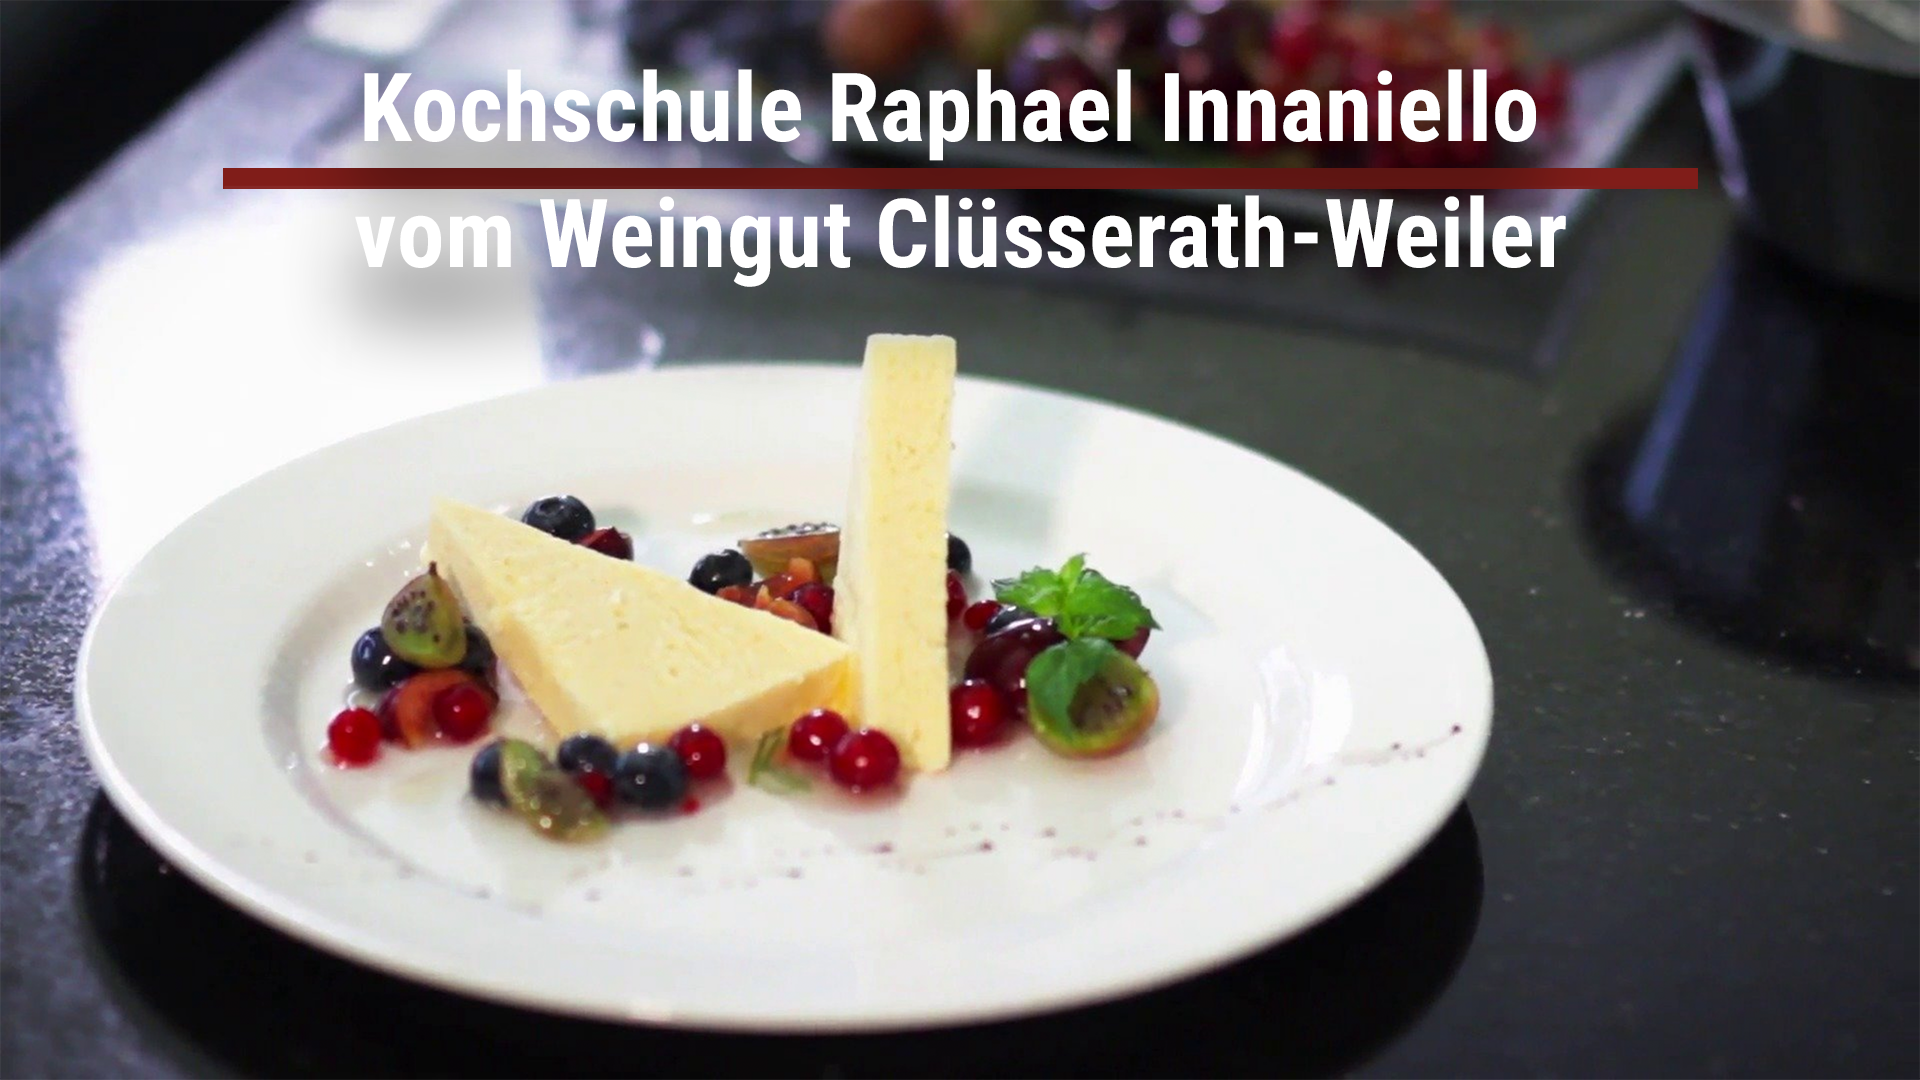 Cooking school Raphael Innaniello from the Clüsserath-Weiler winery